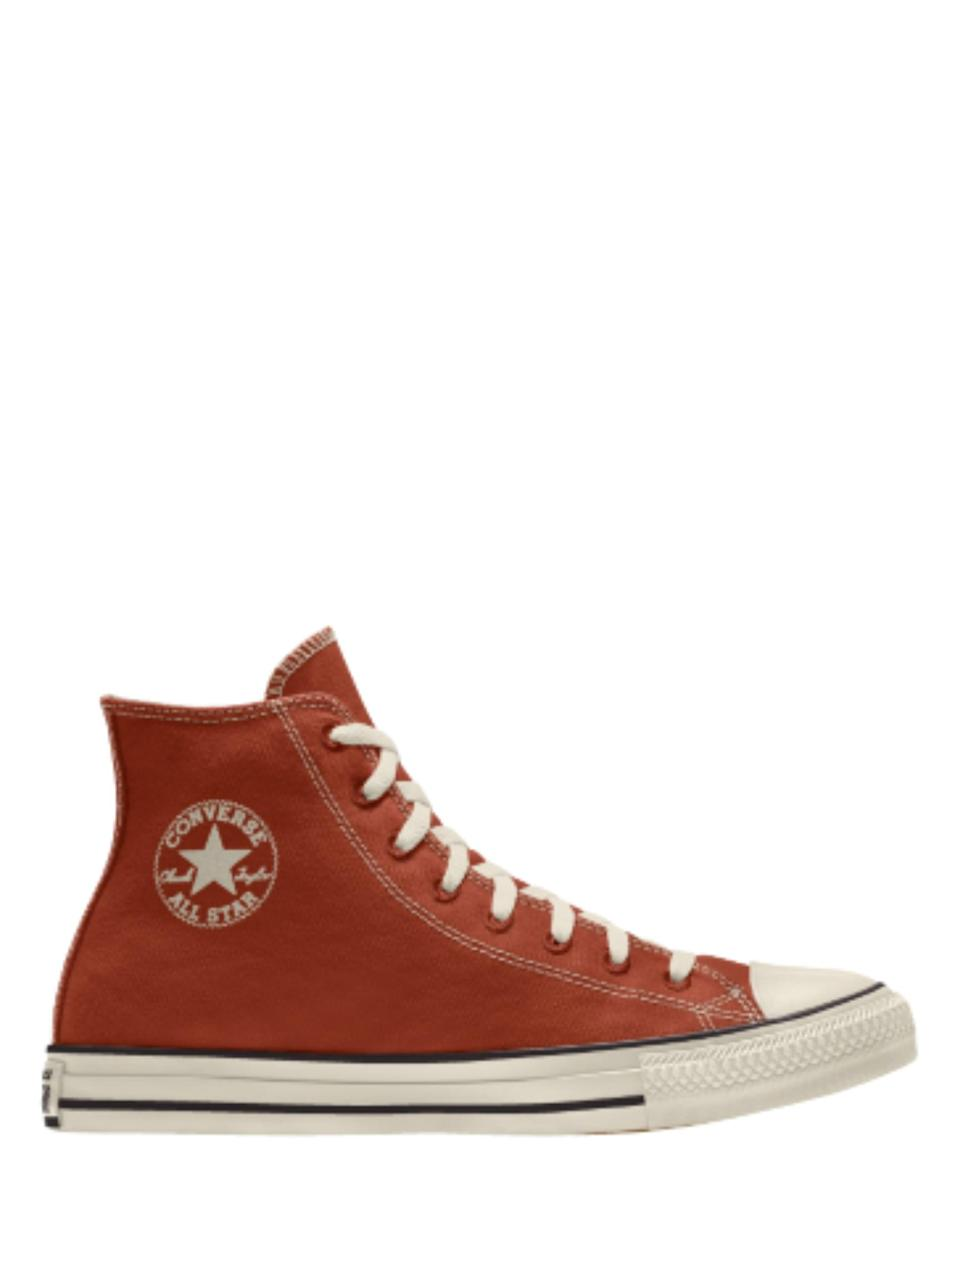 """<p>Good news: Converse now offers a recycled polyester version of its classic silhouette. As an added bonus, the <a href=""""https://www.converse.com/shop/p/custom-renew-chuck-taylor-all-star-by-you-unisex-high-top-shoe/167249CFA19.html"""" class=""""link rapid-noclick-resp"""" rel=""""nofollow noopener"""" target=""""_blank"""" data-ylk=""""slk:Converse Renew Chuck Taylor All Star By You"""">Converse Renew Chuck Taylor All Star By You</a> ($80) is customizable, too.</p>"""